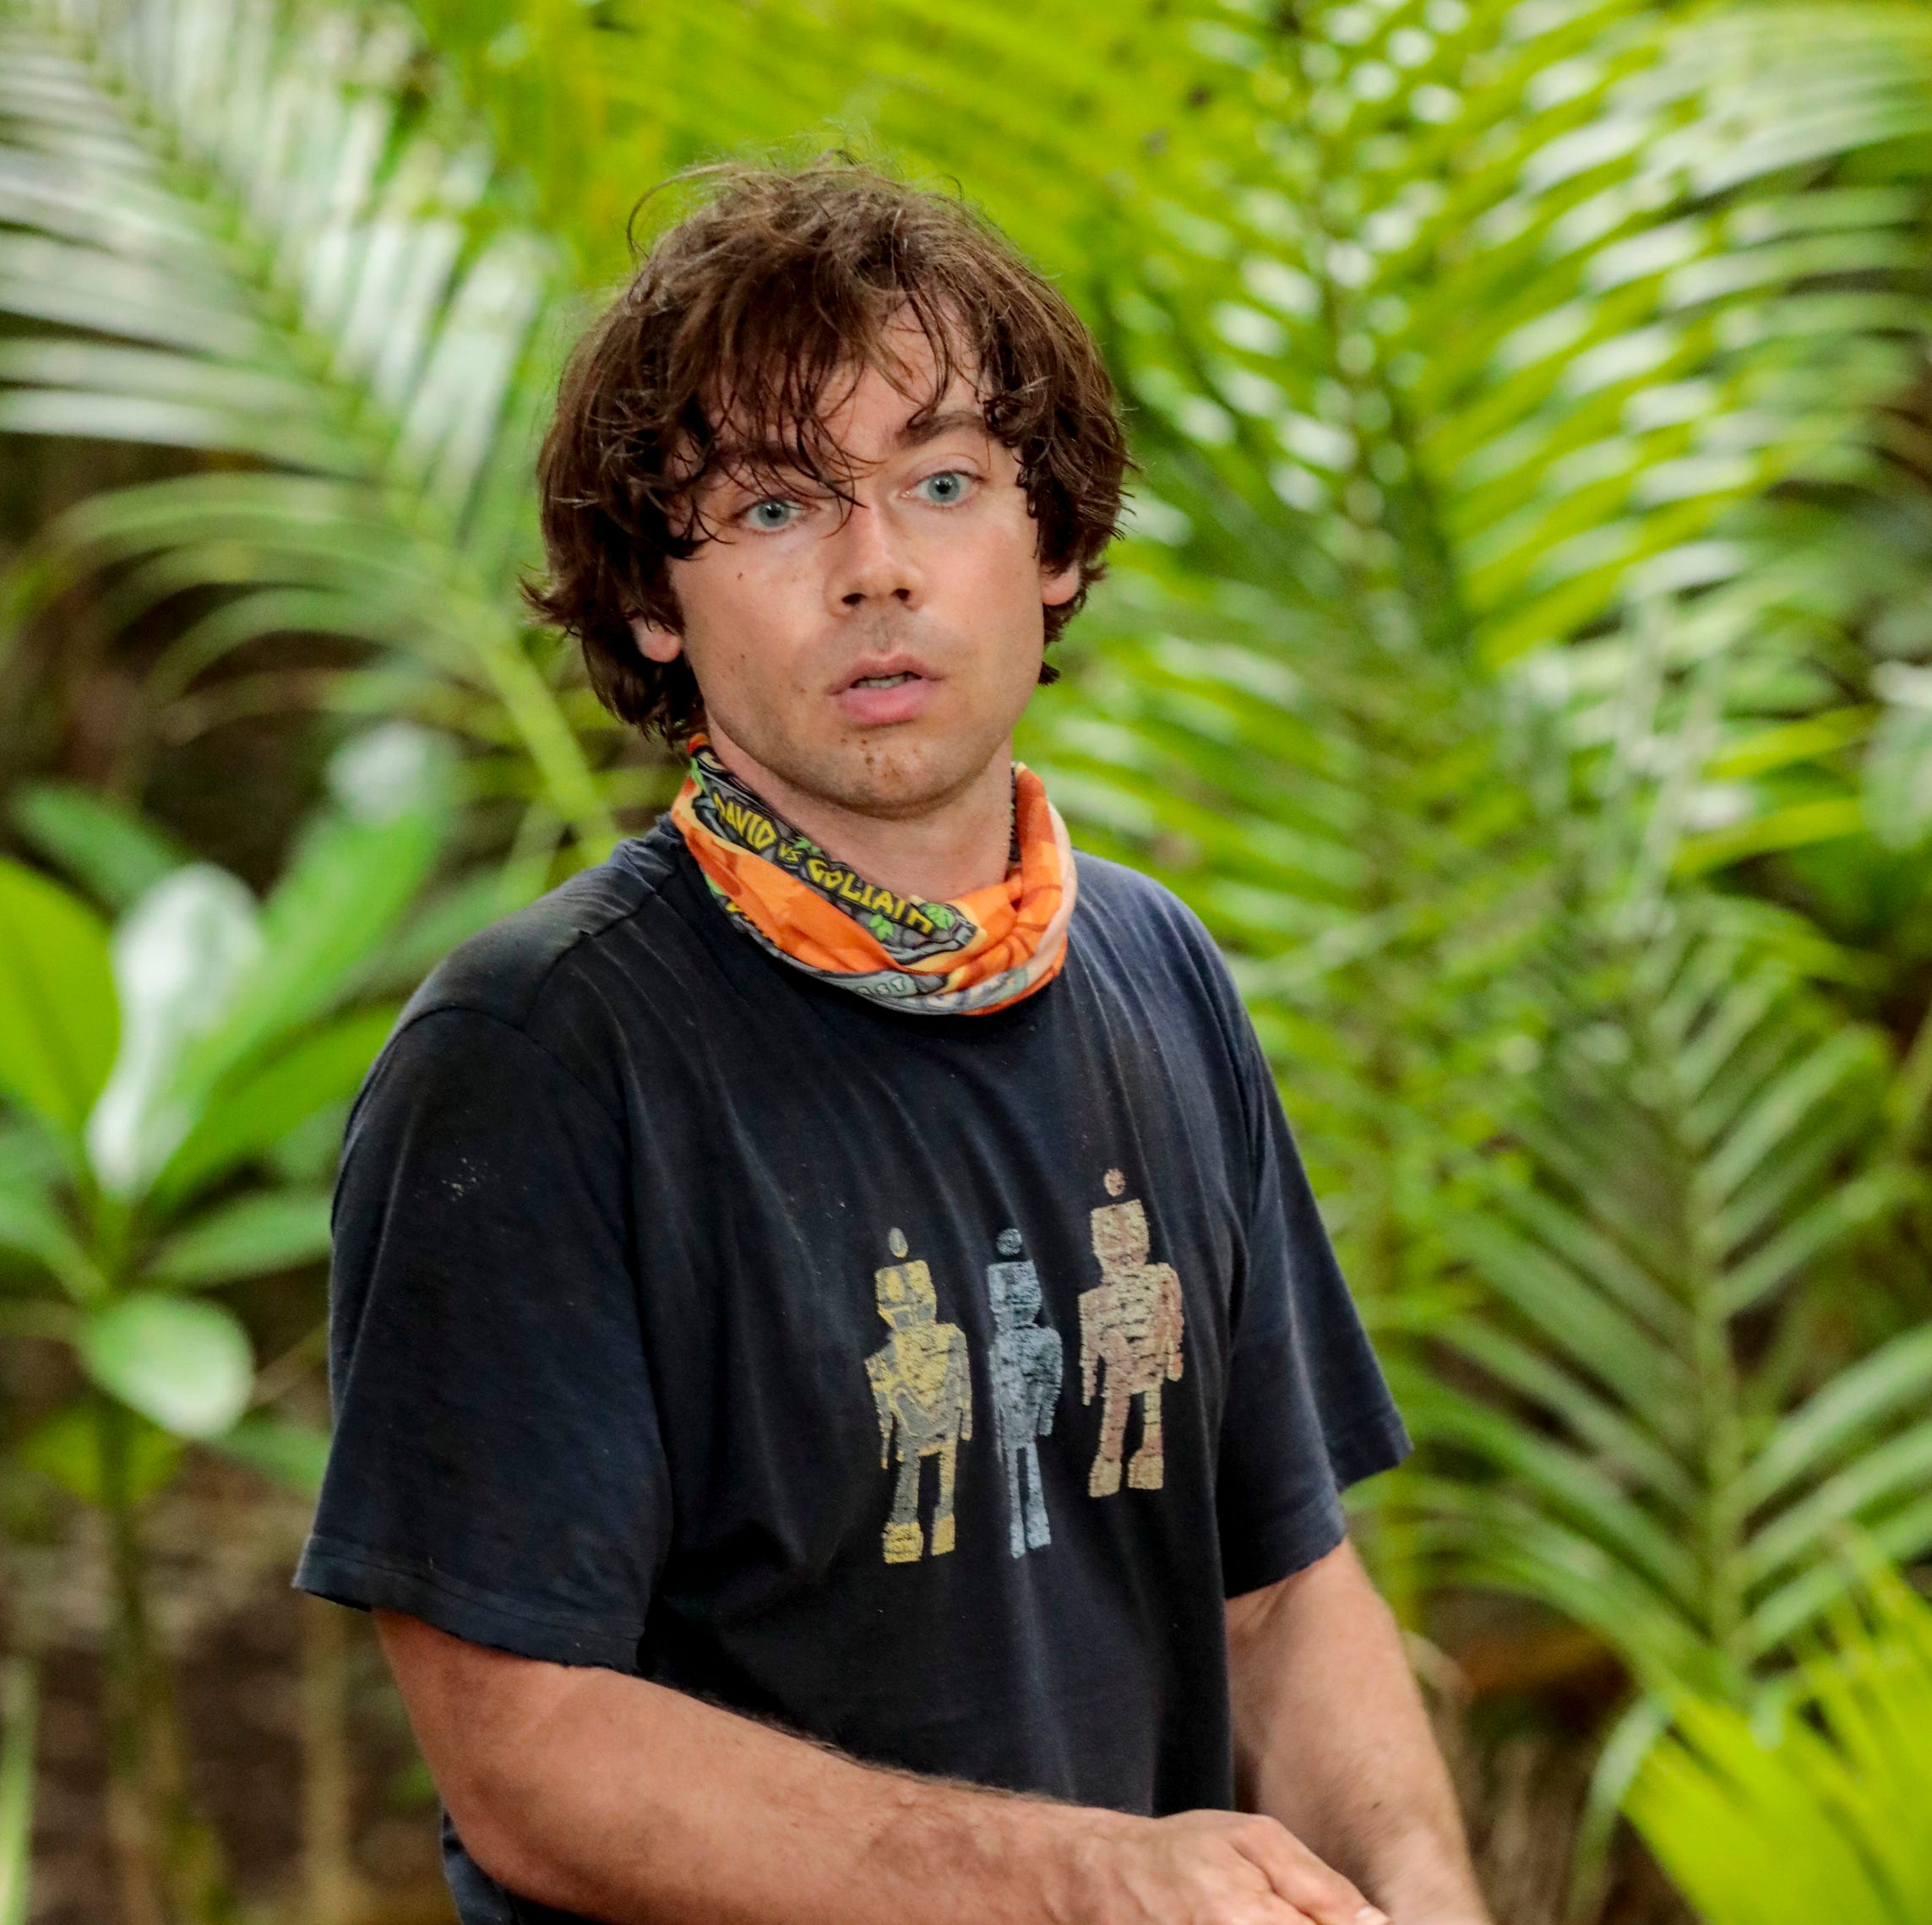 FAMU-FSU engineering prof Christian Hubicki could be secret weapon on new 'Survivor' season